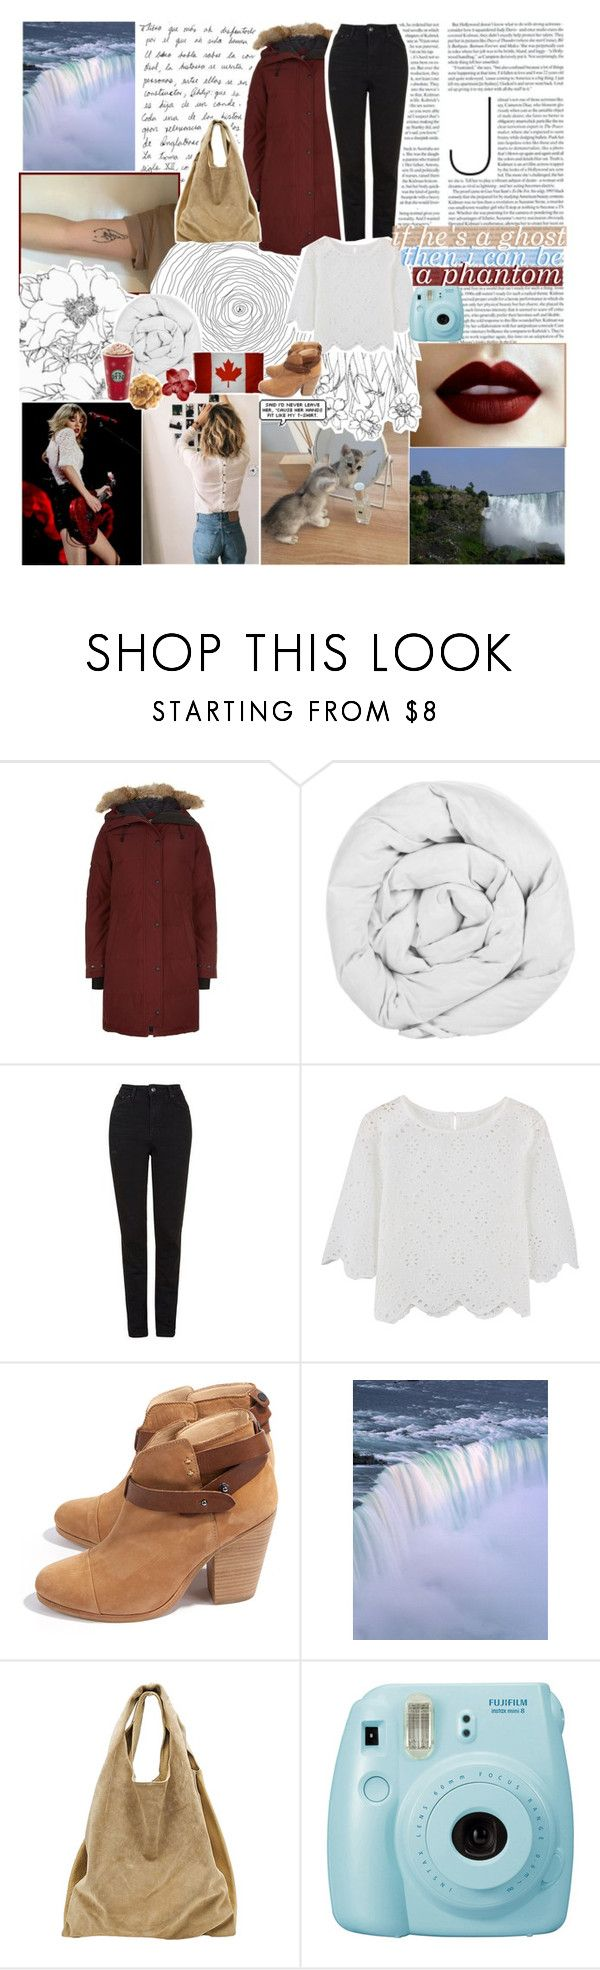 """""""☾ i see nothing better"""" by thundxrstorms ❤ liked on Polyvore featuring GET LOST, Canada Goose, The Fine Bedding Company, Topshop, rag & bone, Alexander Wang, Fujifilm, country and zoesworldtripchallenge"""